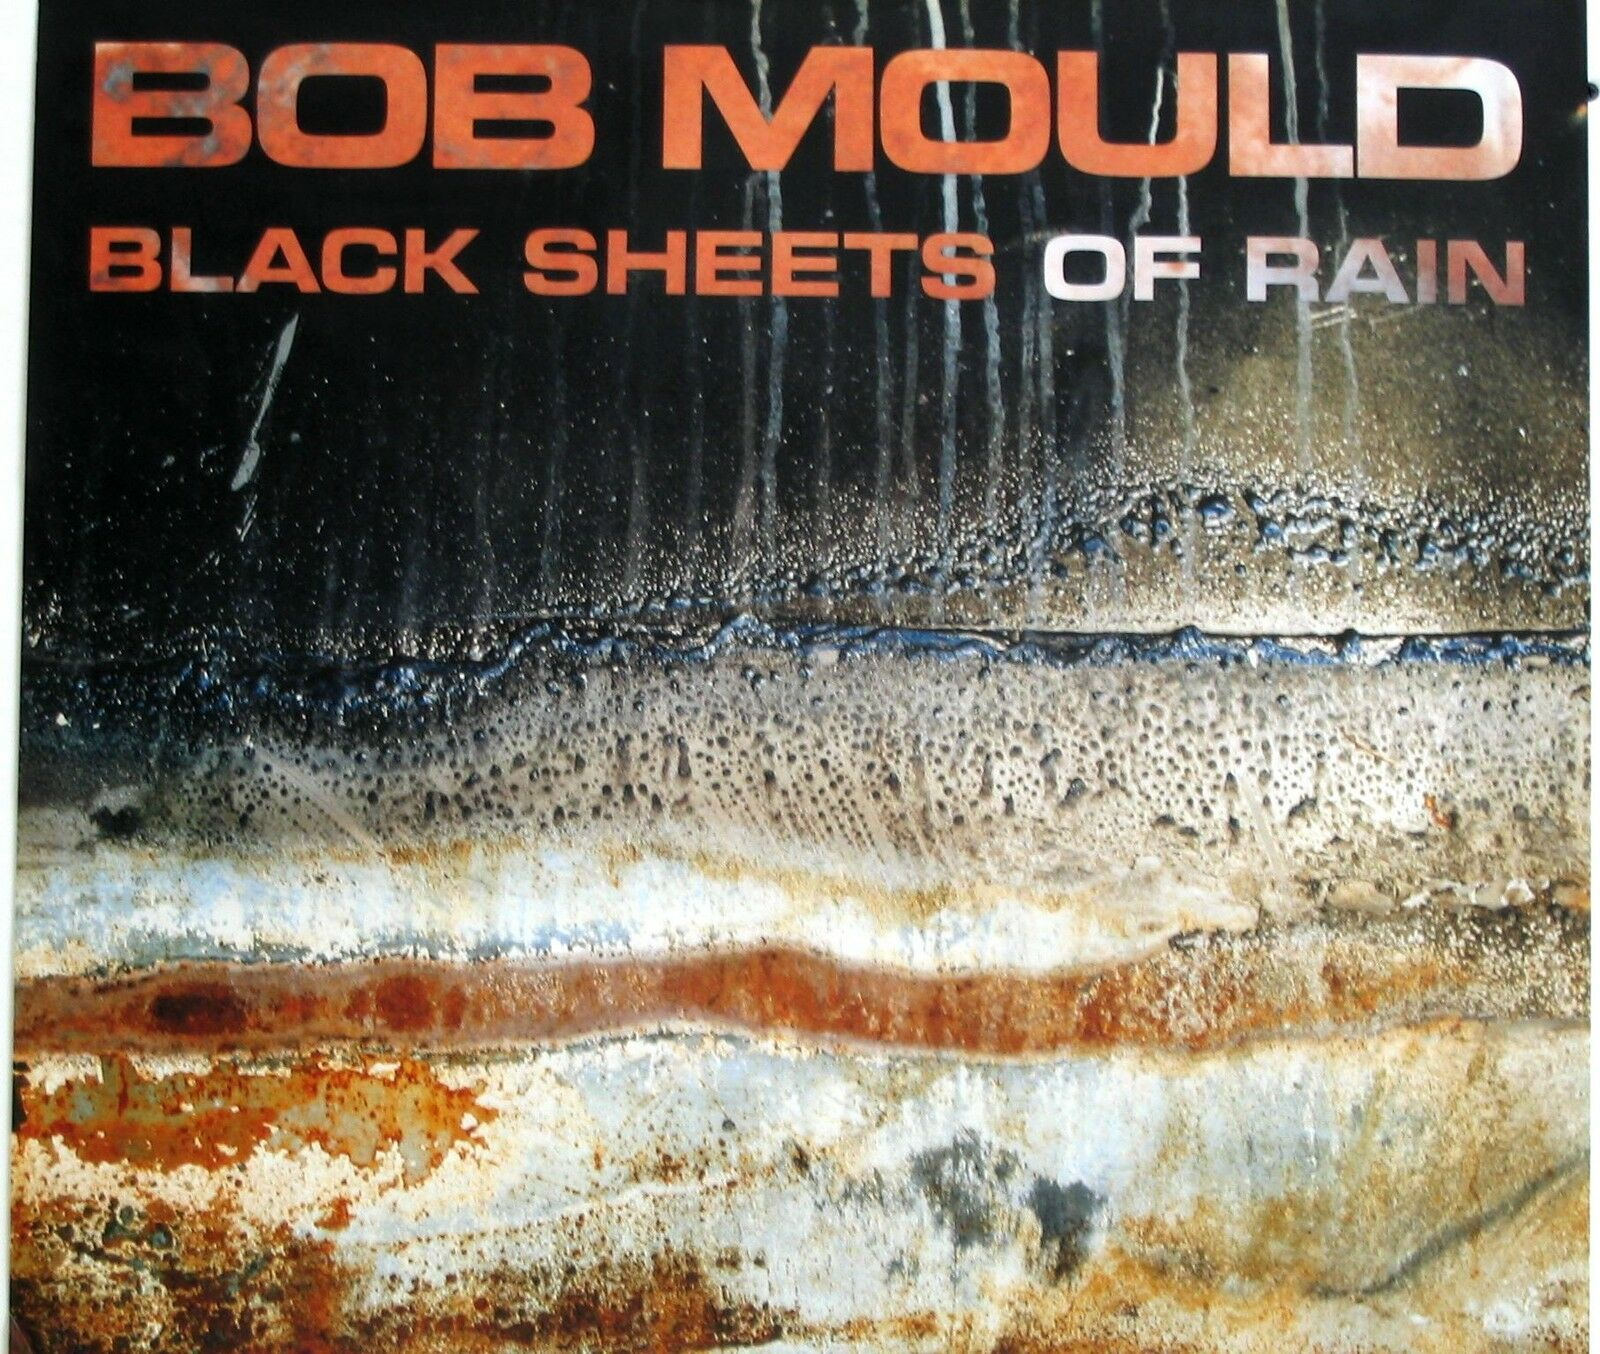 Primary image for BOB MOULD POSTER, BLACK SHEETS OF RAIN (M7)